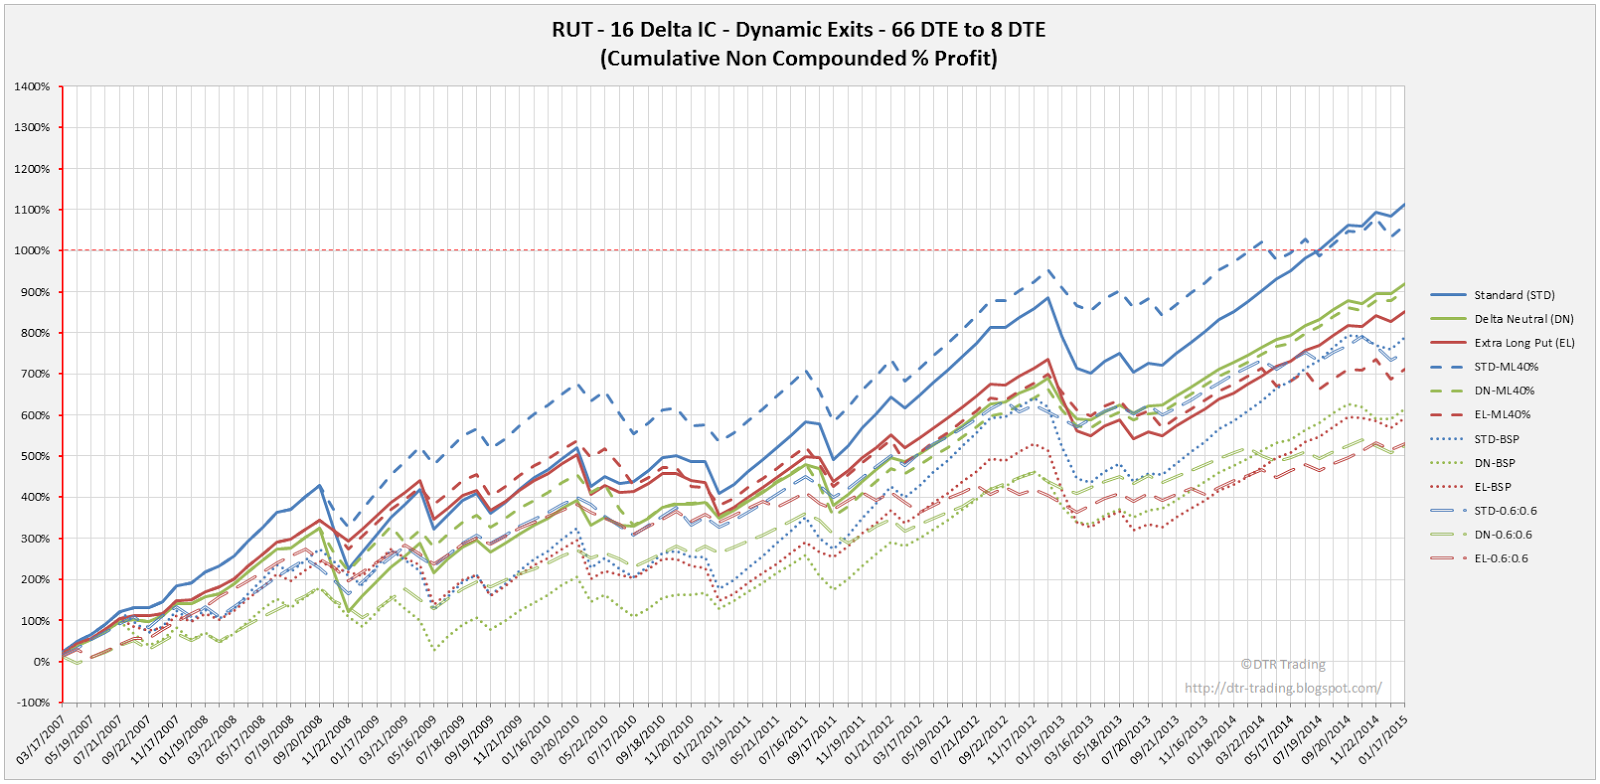 Iron Condor Dynamic Exit Equity Curves RUT 66 DTE 16 Delta All Versions